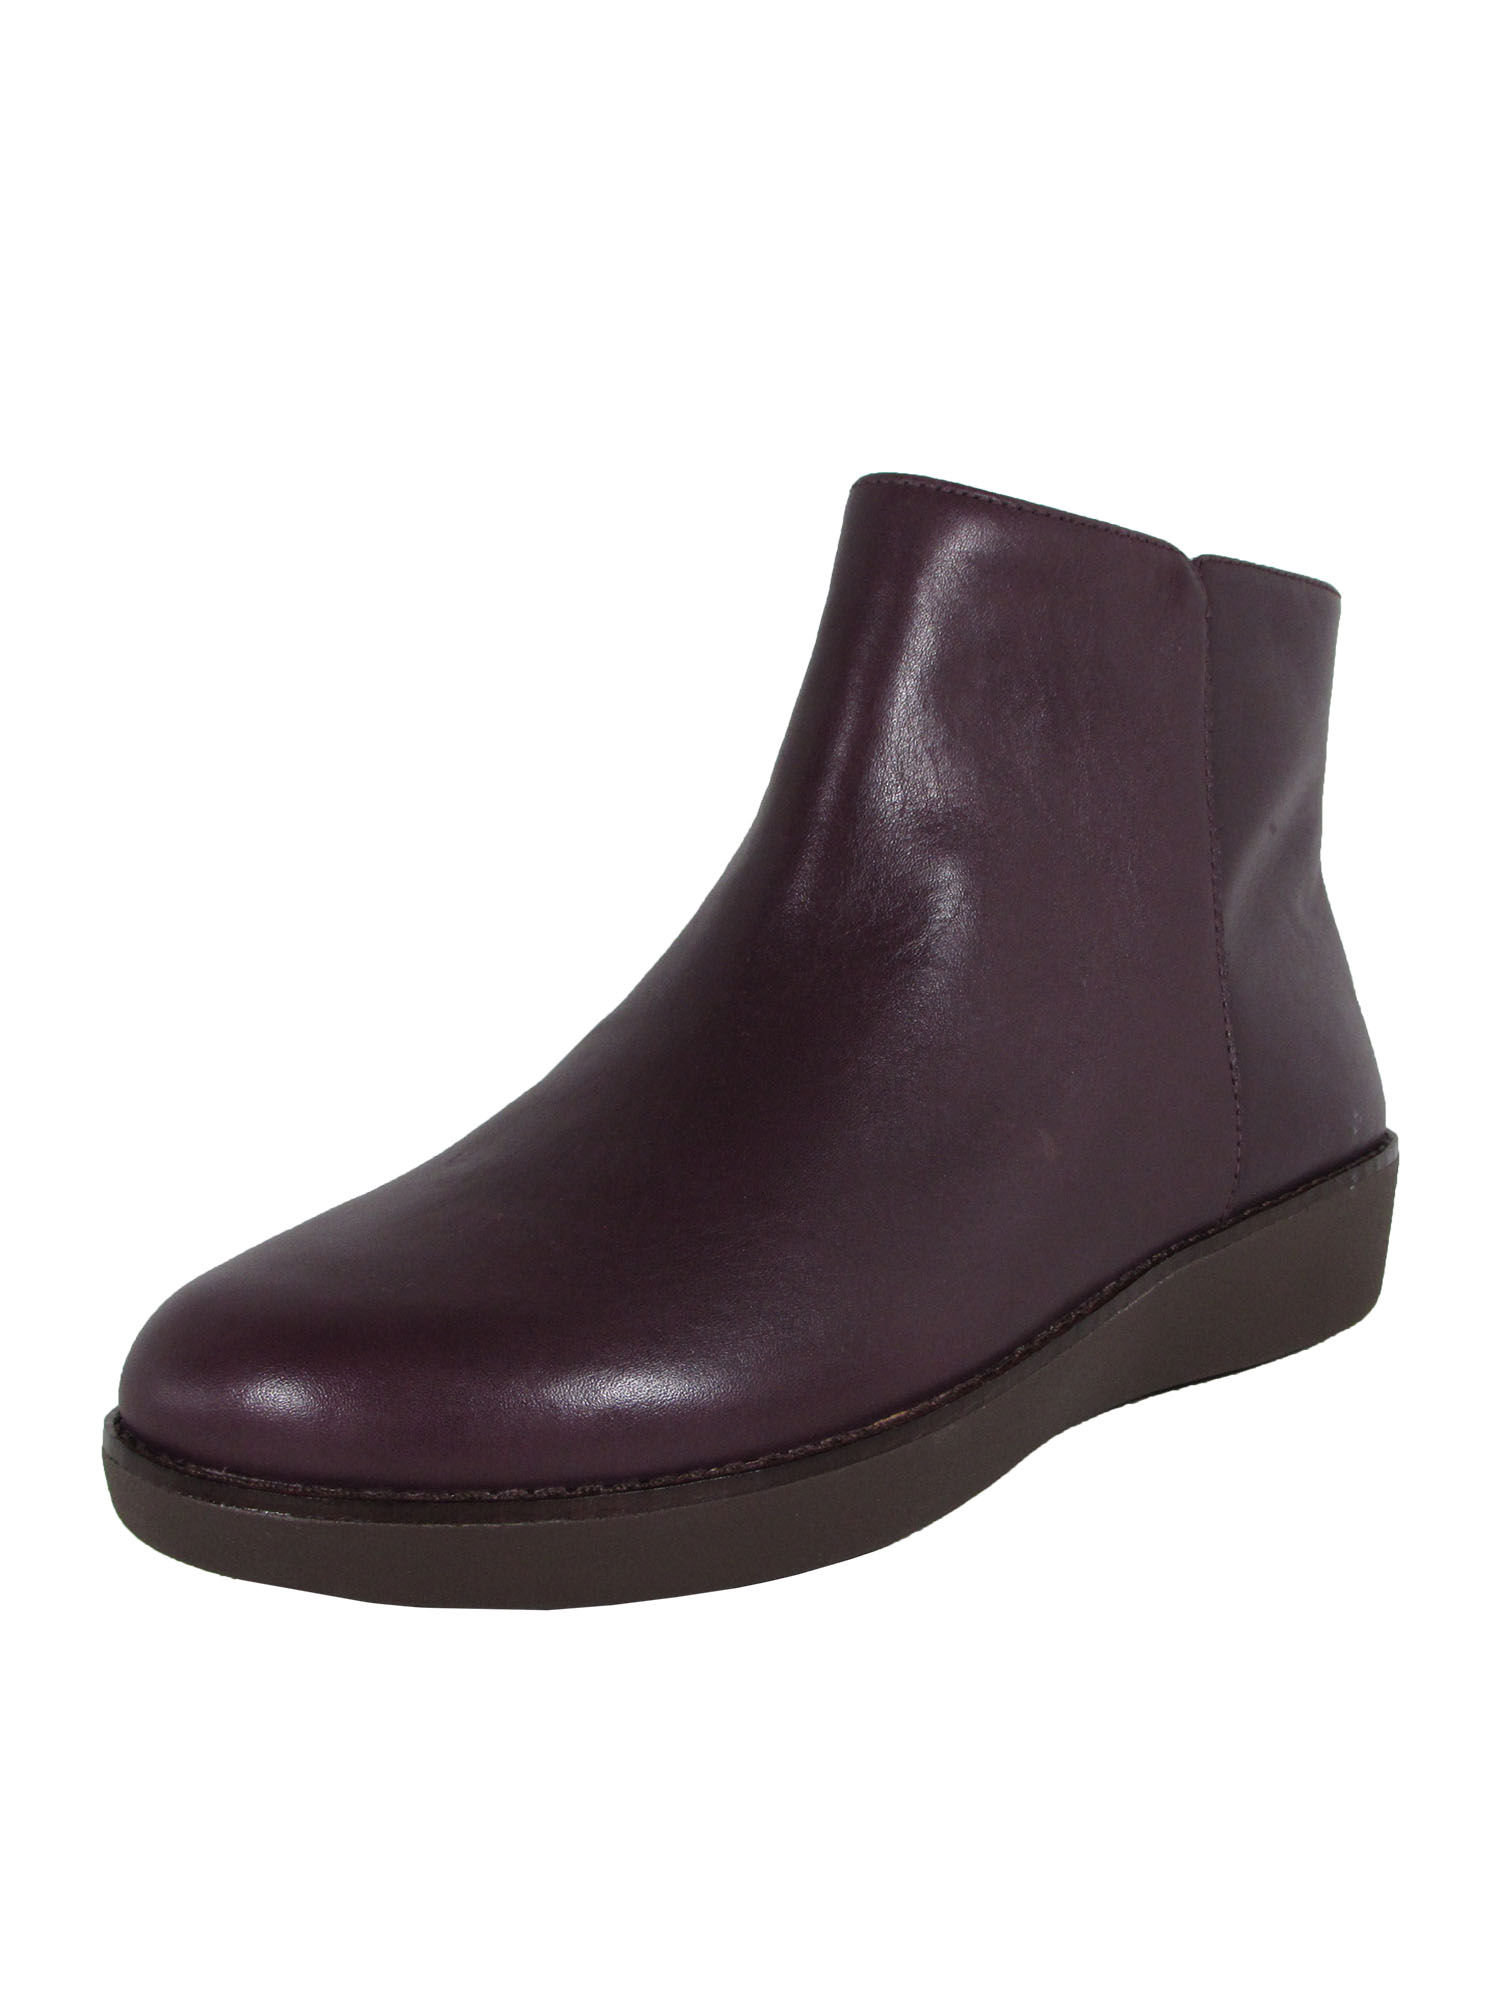 Fitflop-Womens-Ziggy-Zip-Leather-Bootie-Shoes-Deep-Plum-US-6-5